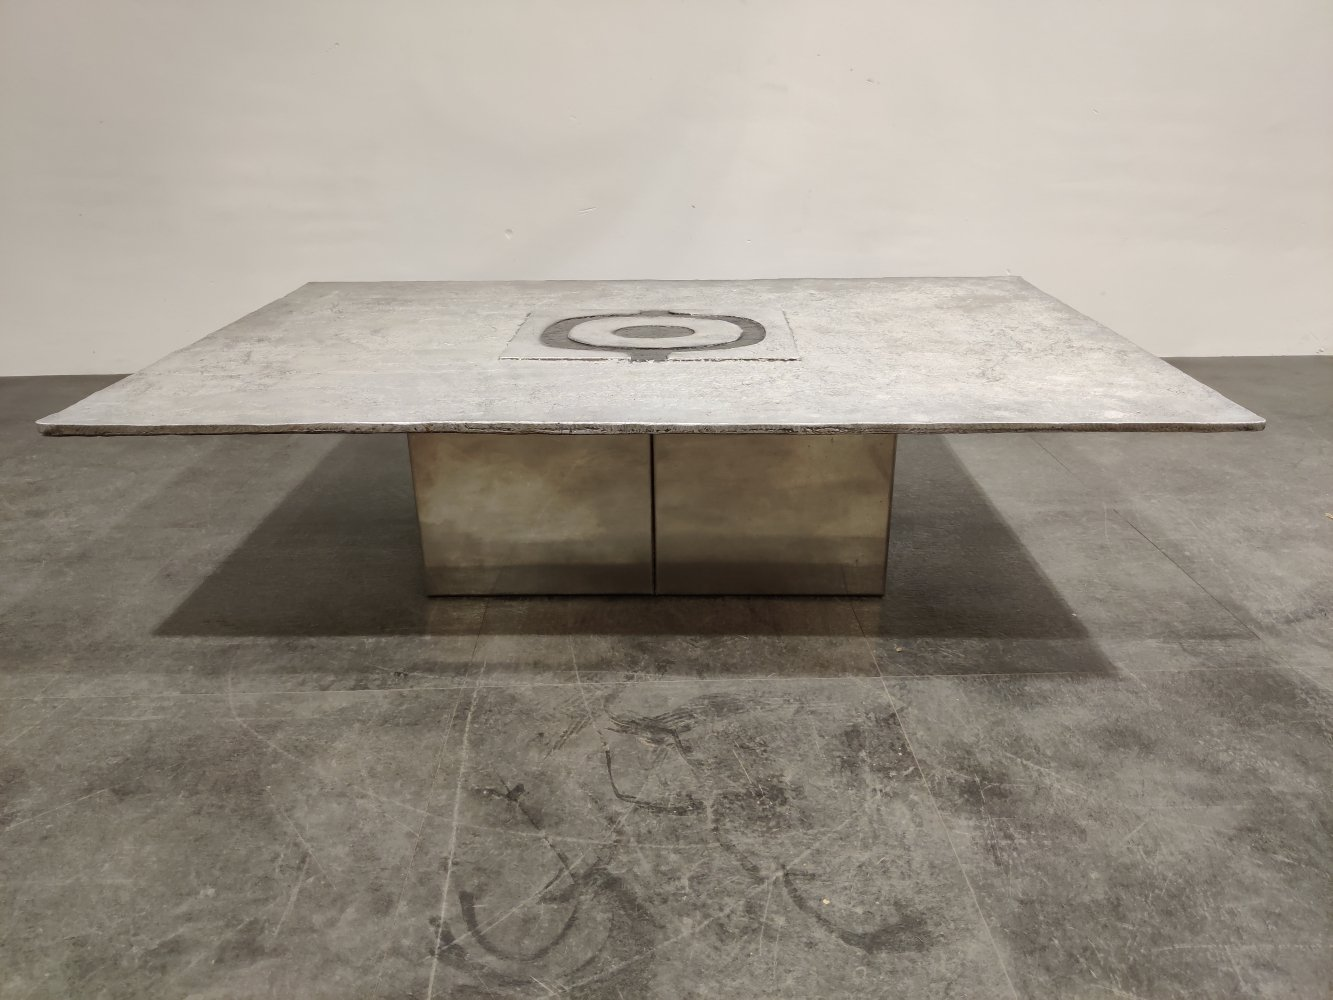 Vintage coffee table by Willy Ceysens, 1970s